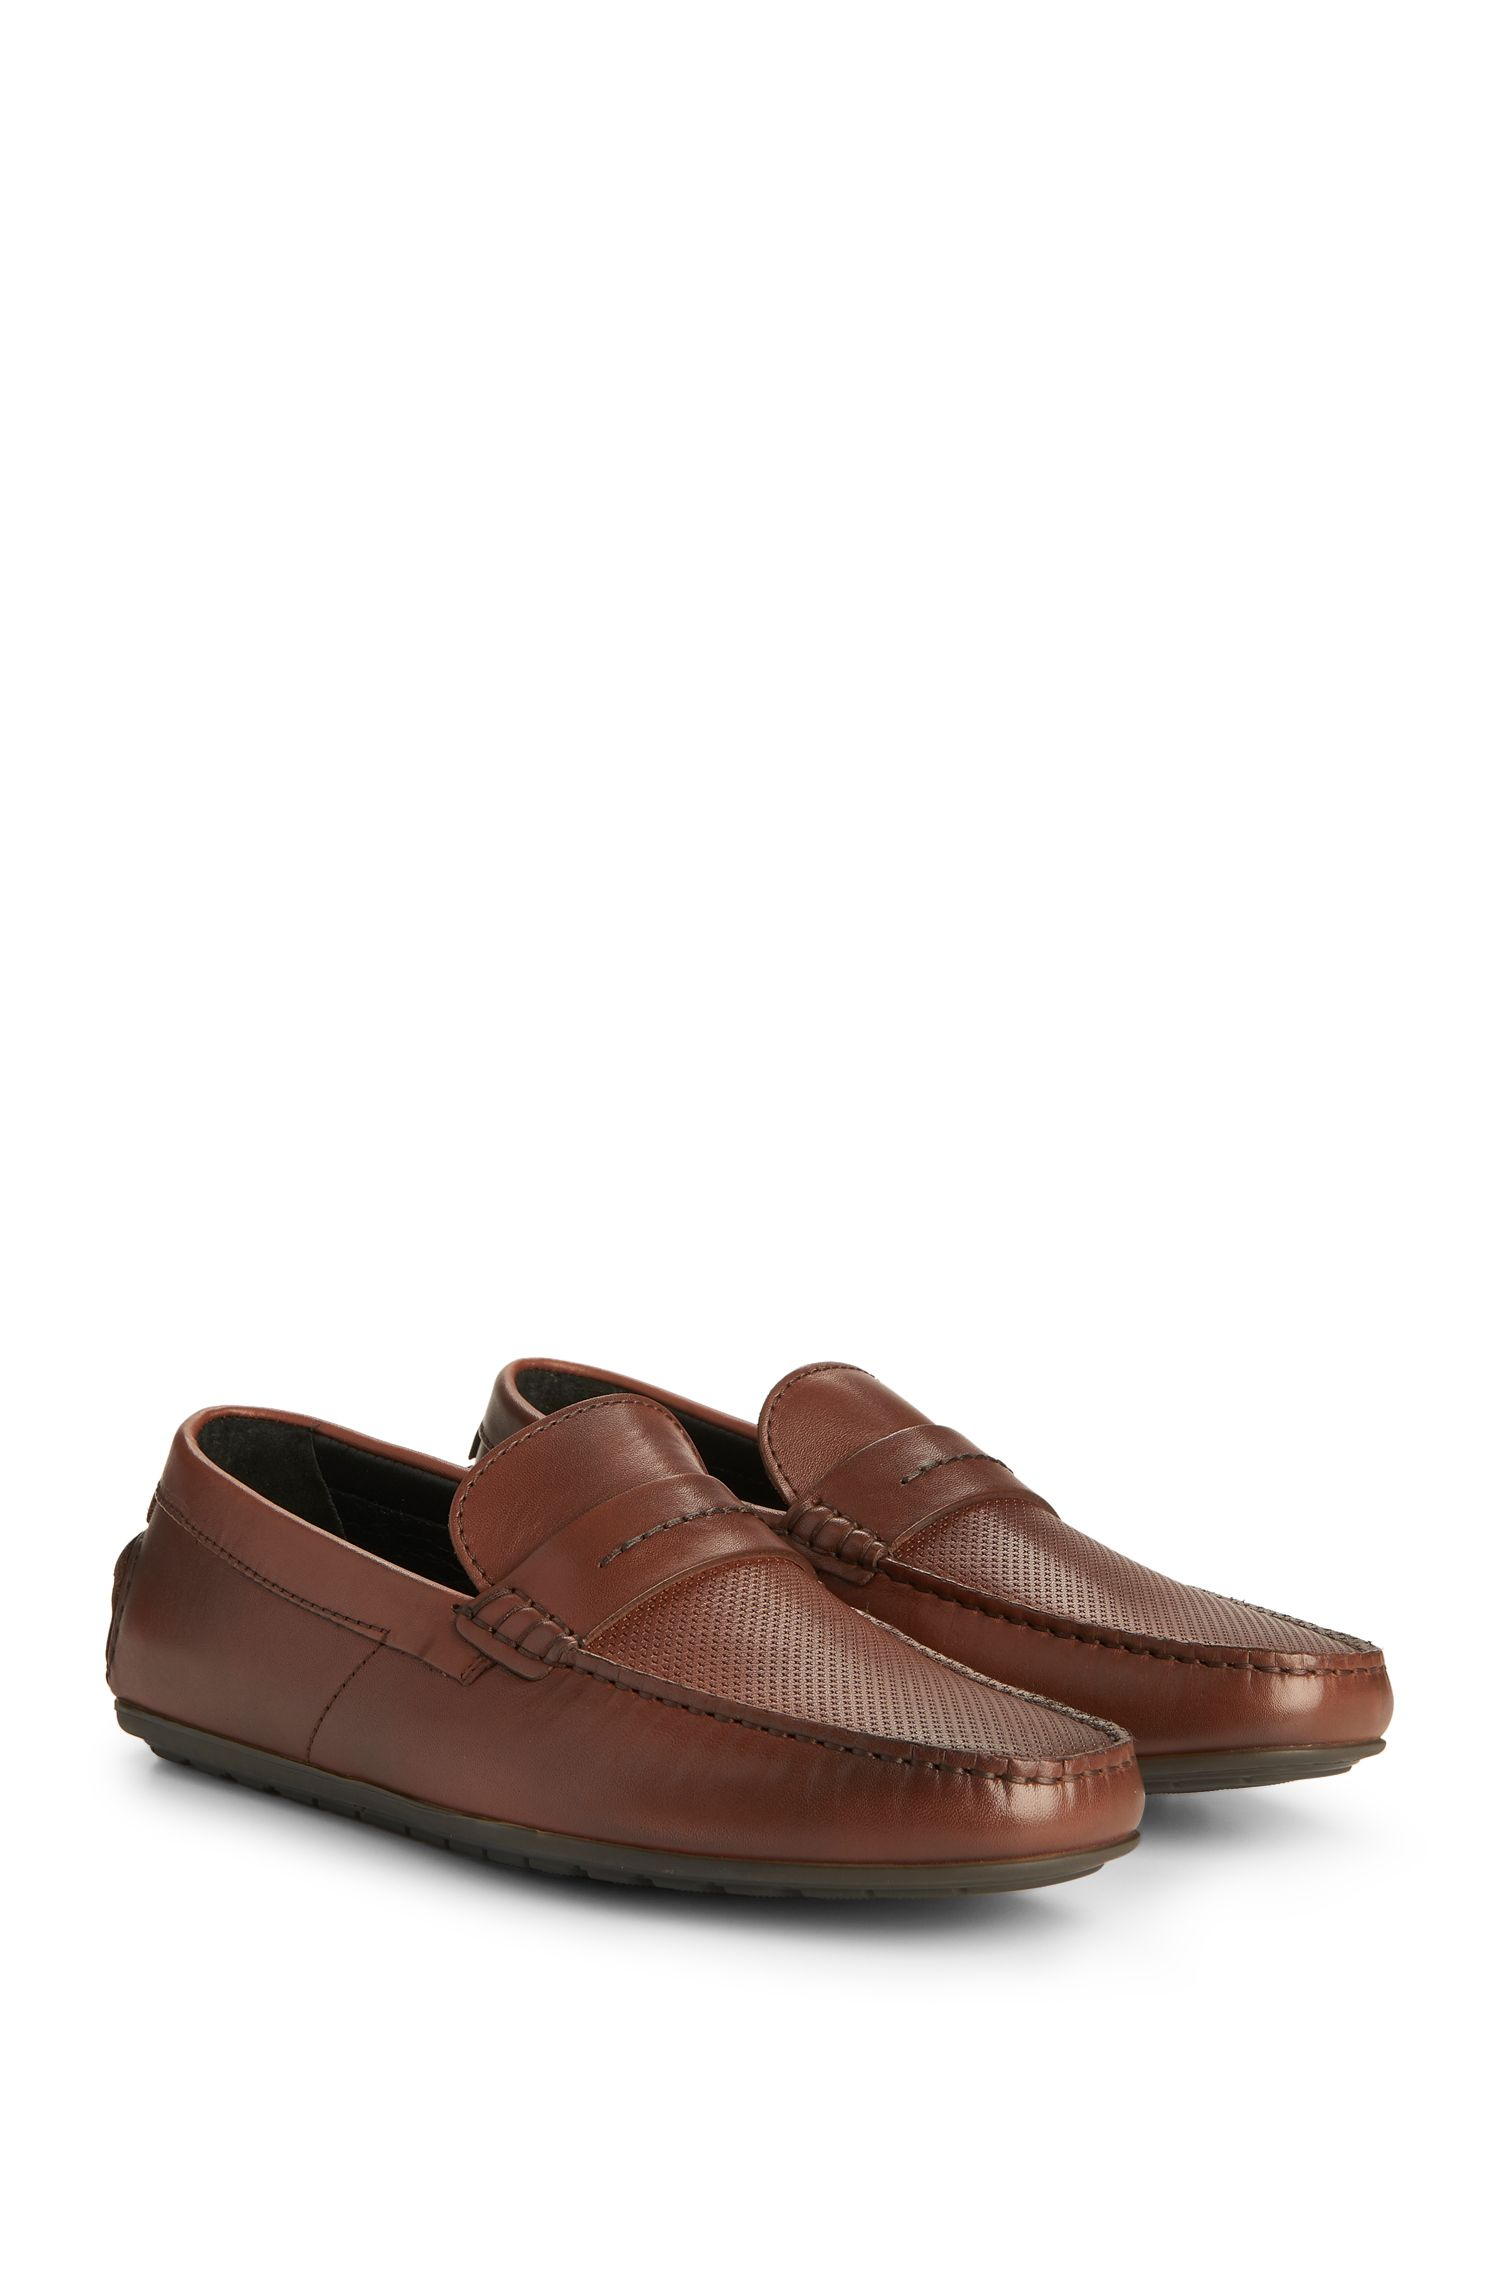 Leather Driving Loafer | Dandy Mocc Plpr, Light Brown